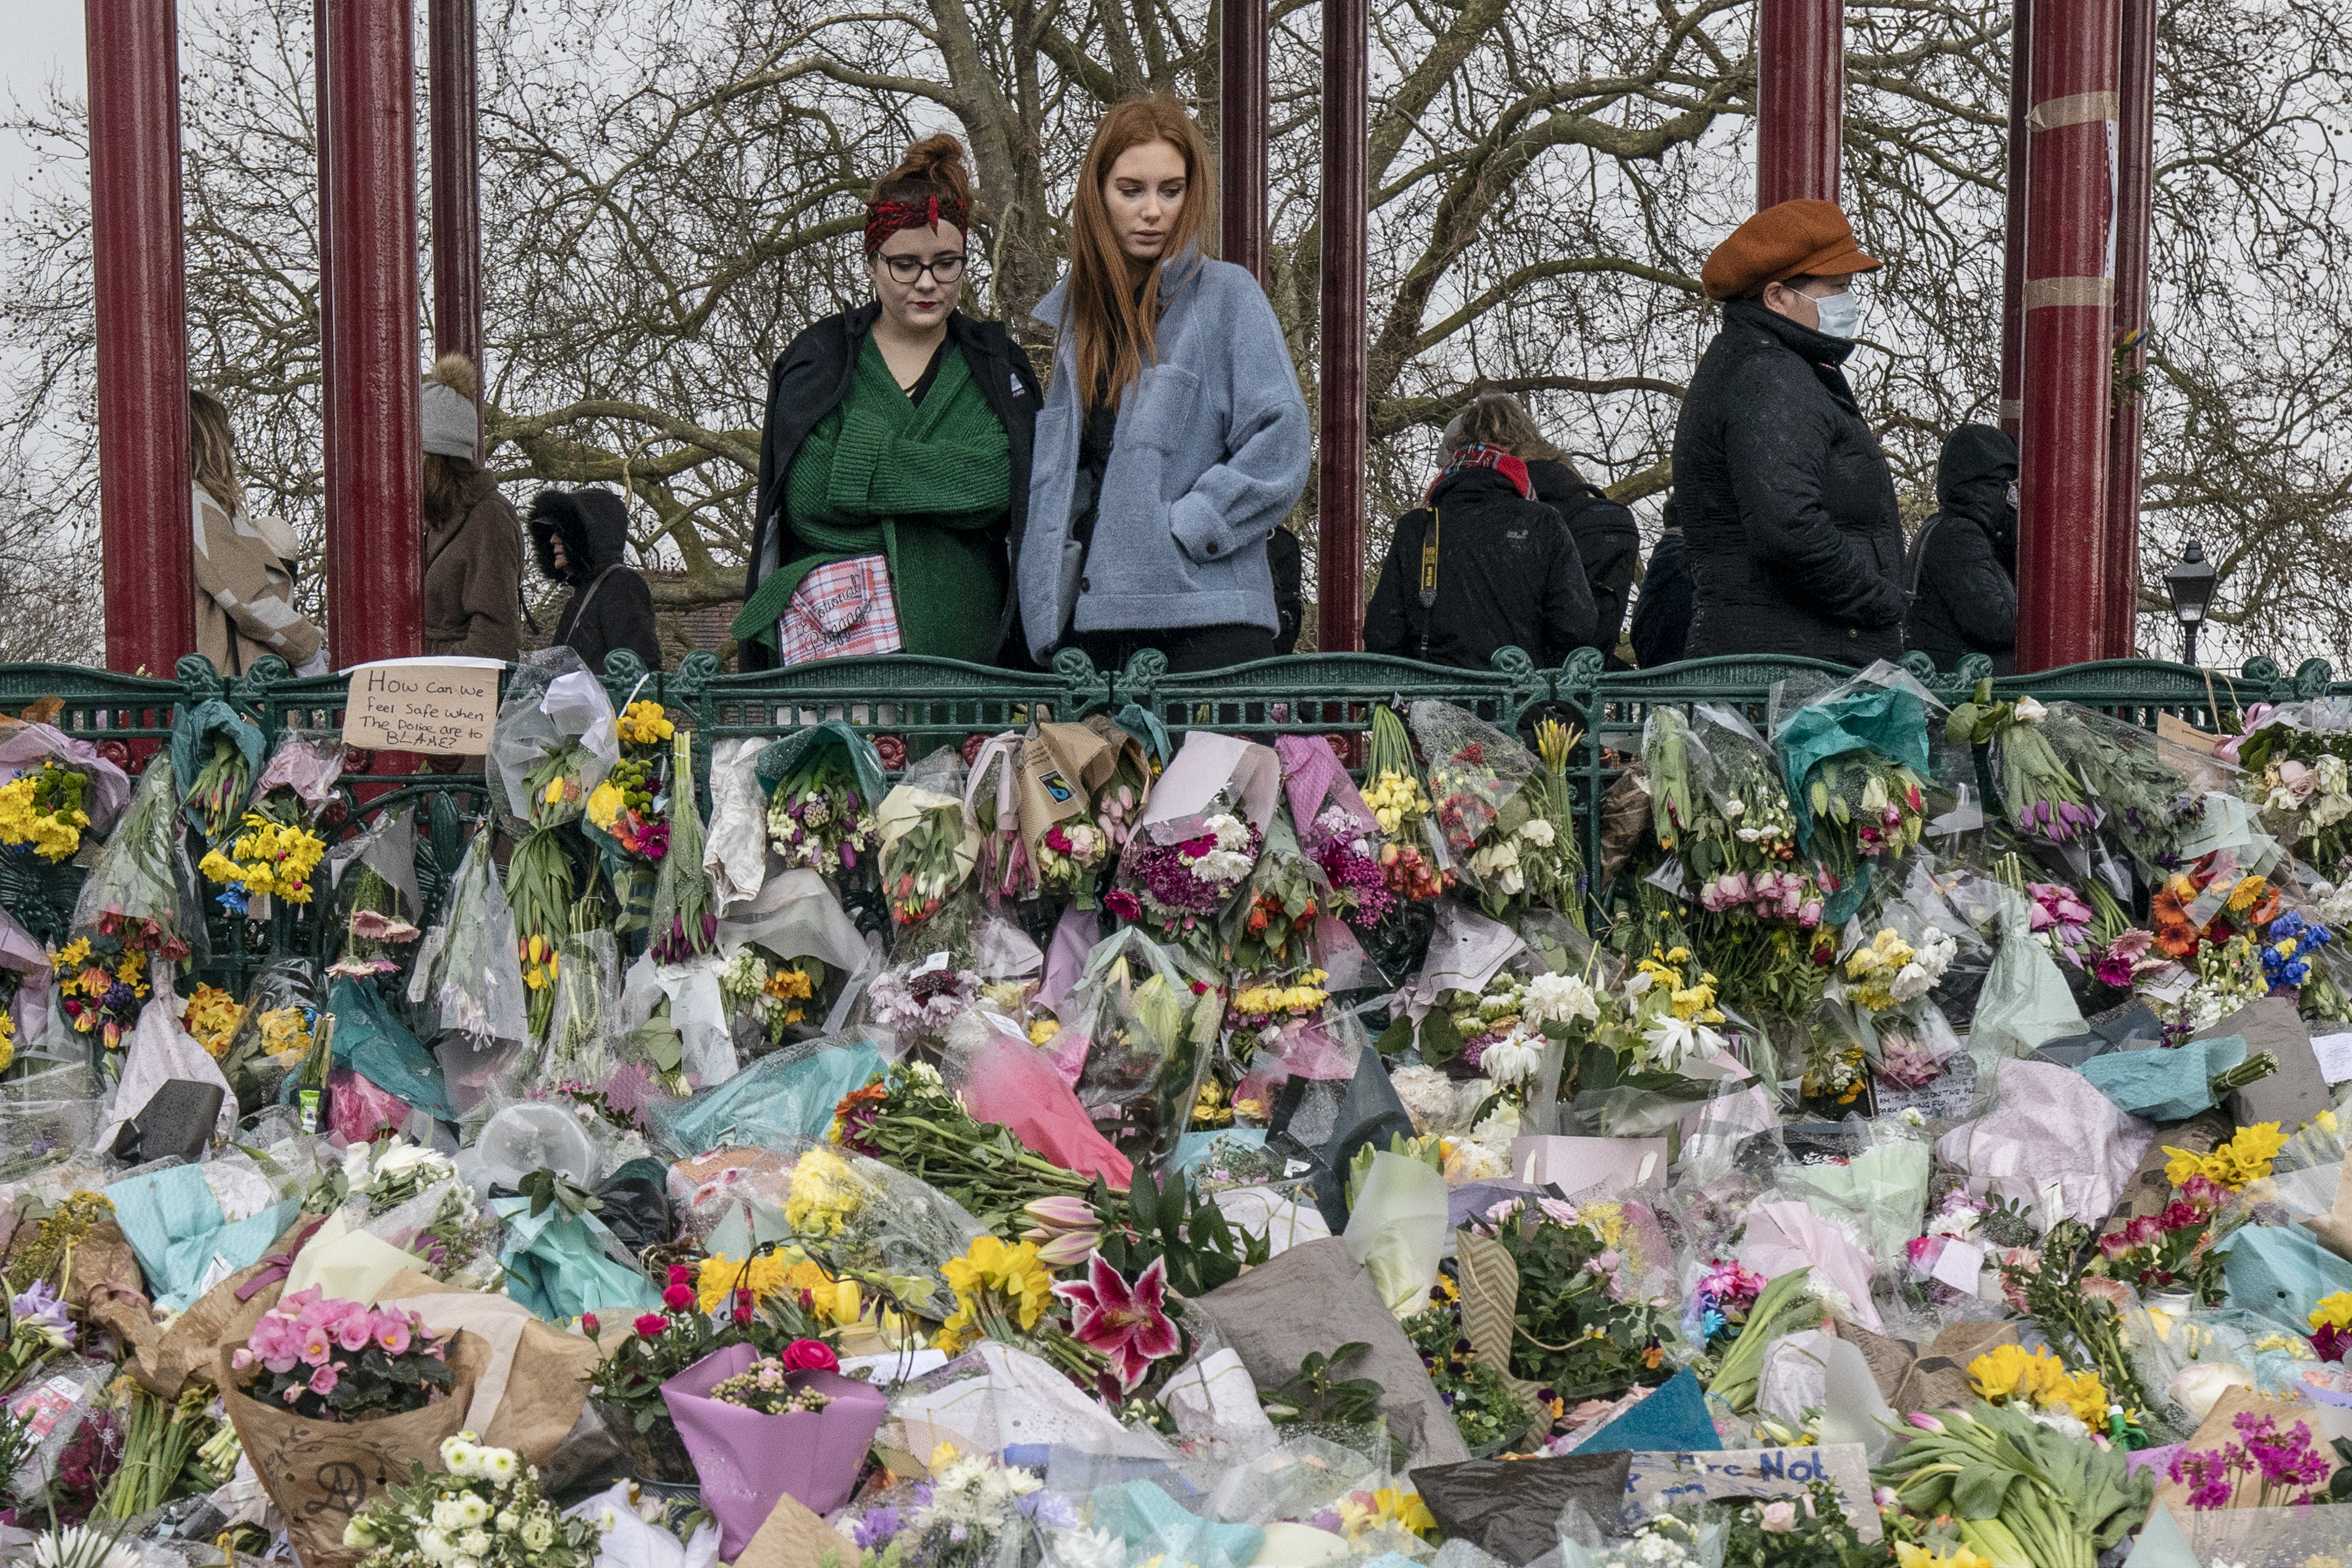 <p>LONDON, ENGLAND - MARCH 15: Well wishers look at the floral tributes placed in tribute to Sarah Everard on Clapham Common on March 15, 2021 in London, England. Hundreds of people turned out in Clapham Common on Saturday night to pay tribute to Sarah Everard, a 33-year-old London resident whose kidnapping and death - allegedly at the hands of an off-duty Metropolitan Police officer - prompted a wave of concern over women's safety. The same police force is being criticised for its response to the vigil, where they forcibly arrested several participants for violations of pandemic-era rules on public assembly. (Photo by Dan Kitwood/Getty Images)</p>